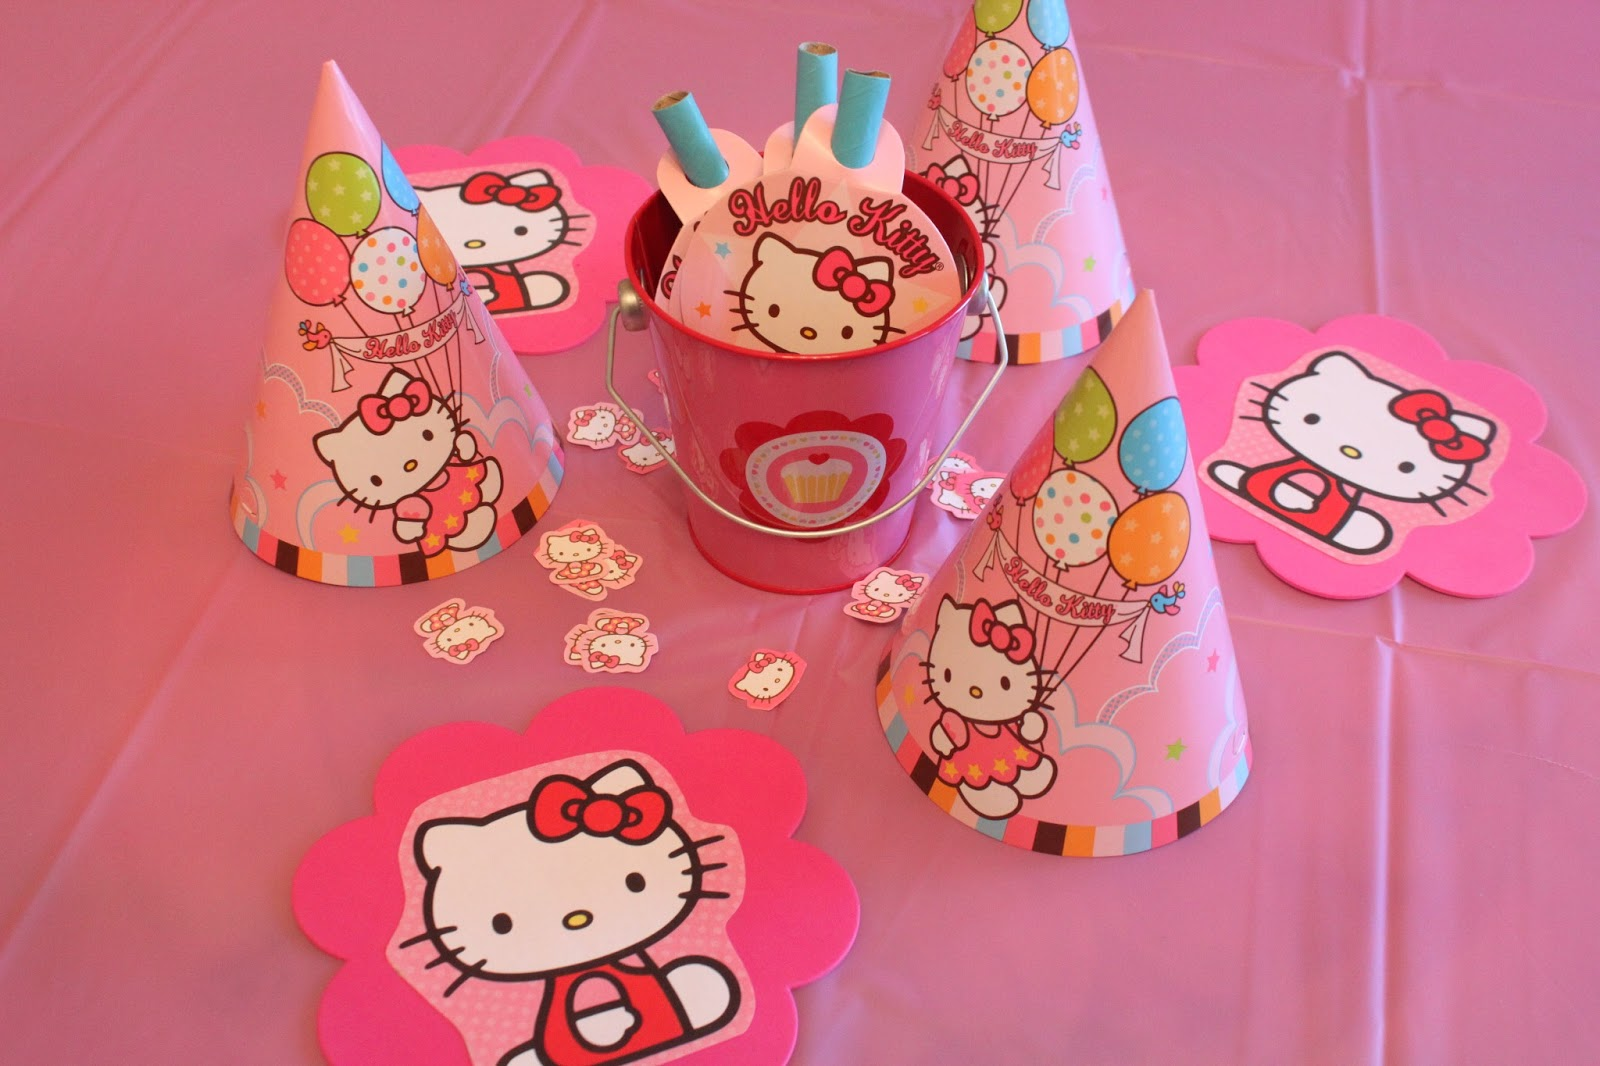 I Found A Bunch Of Pink Pails And Filled Them With Blowouts Then Surrounded It Party Hats Confetti Hello Kitty Cut Outs That Color Copied